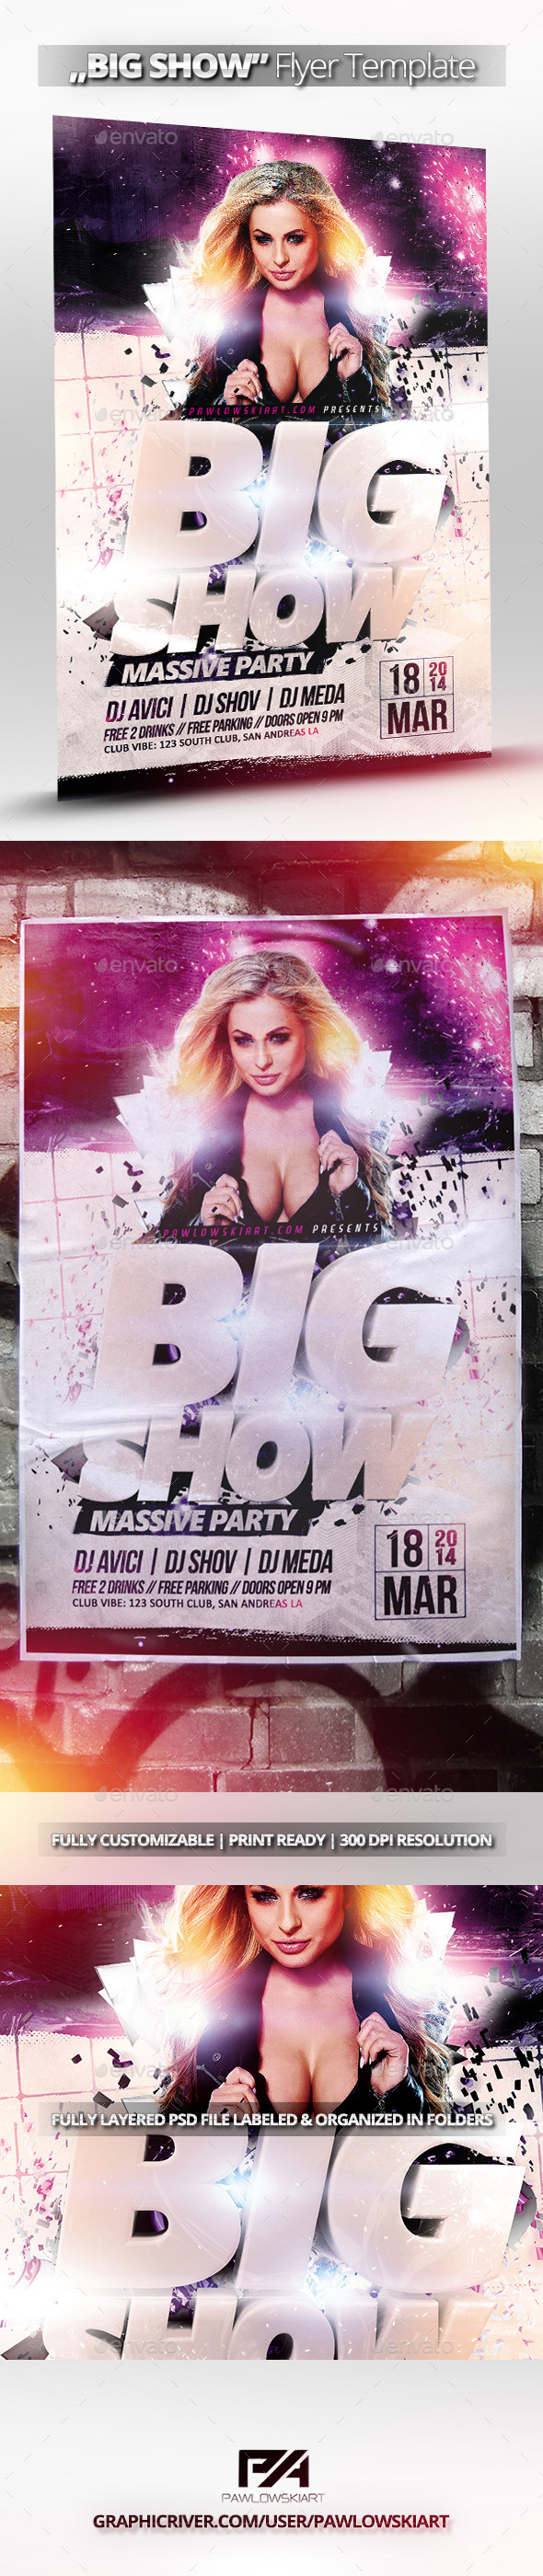 BIG SHOW Party Flyer Template - Clubs & Parties Events